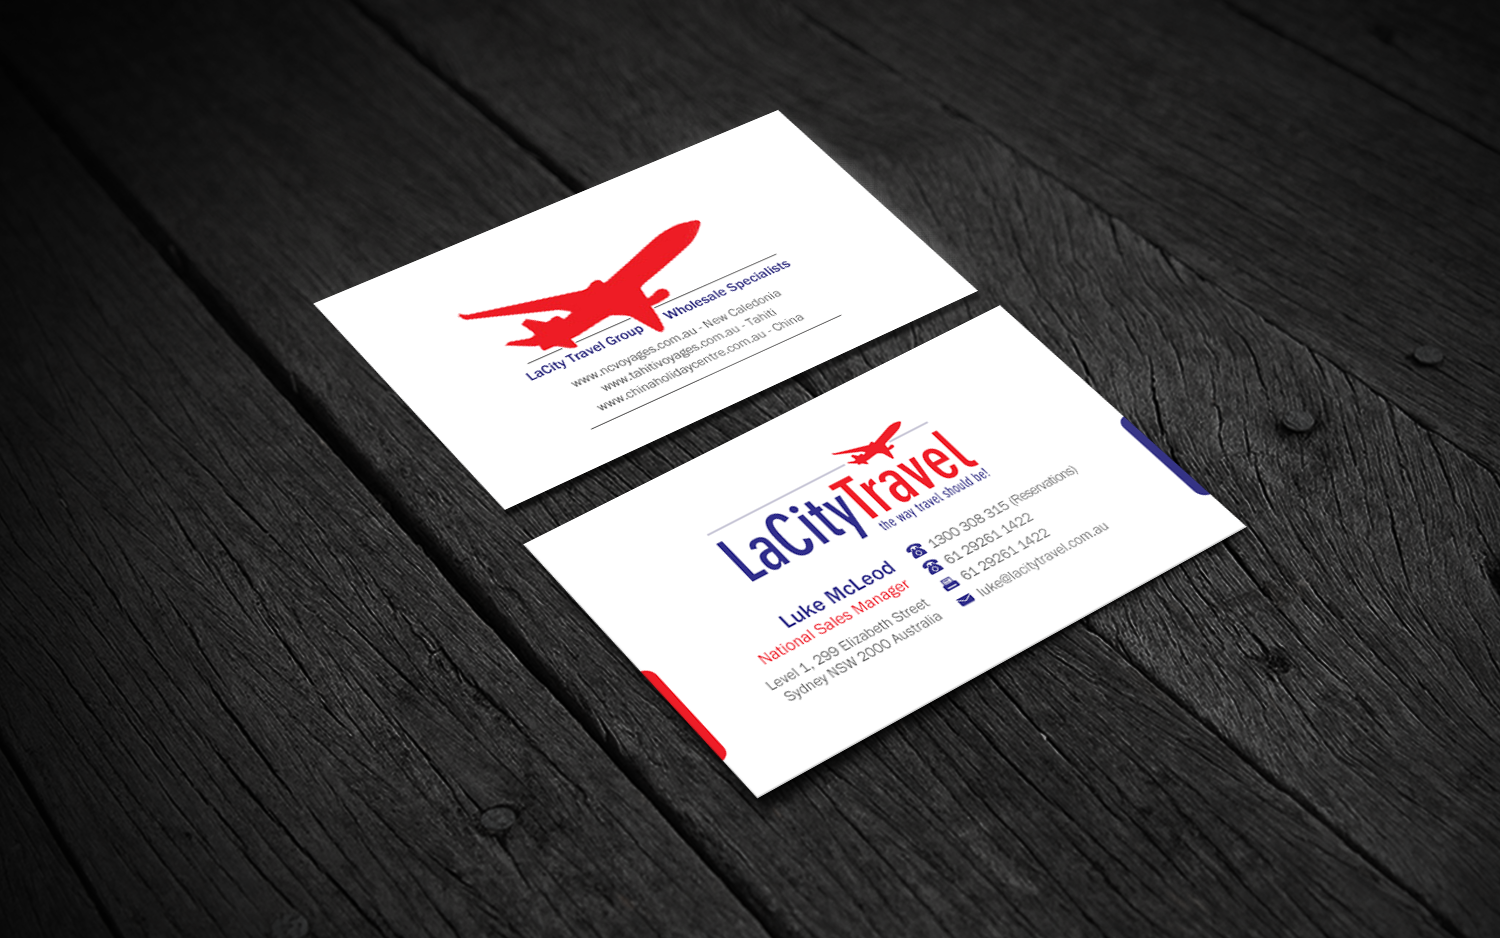 Modern professional travel agent business card design for lacity business card design by brand aid for lacity travel australia design 8016833 reheart Images